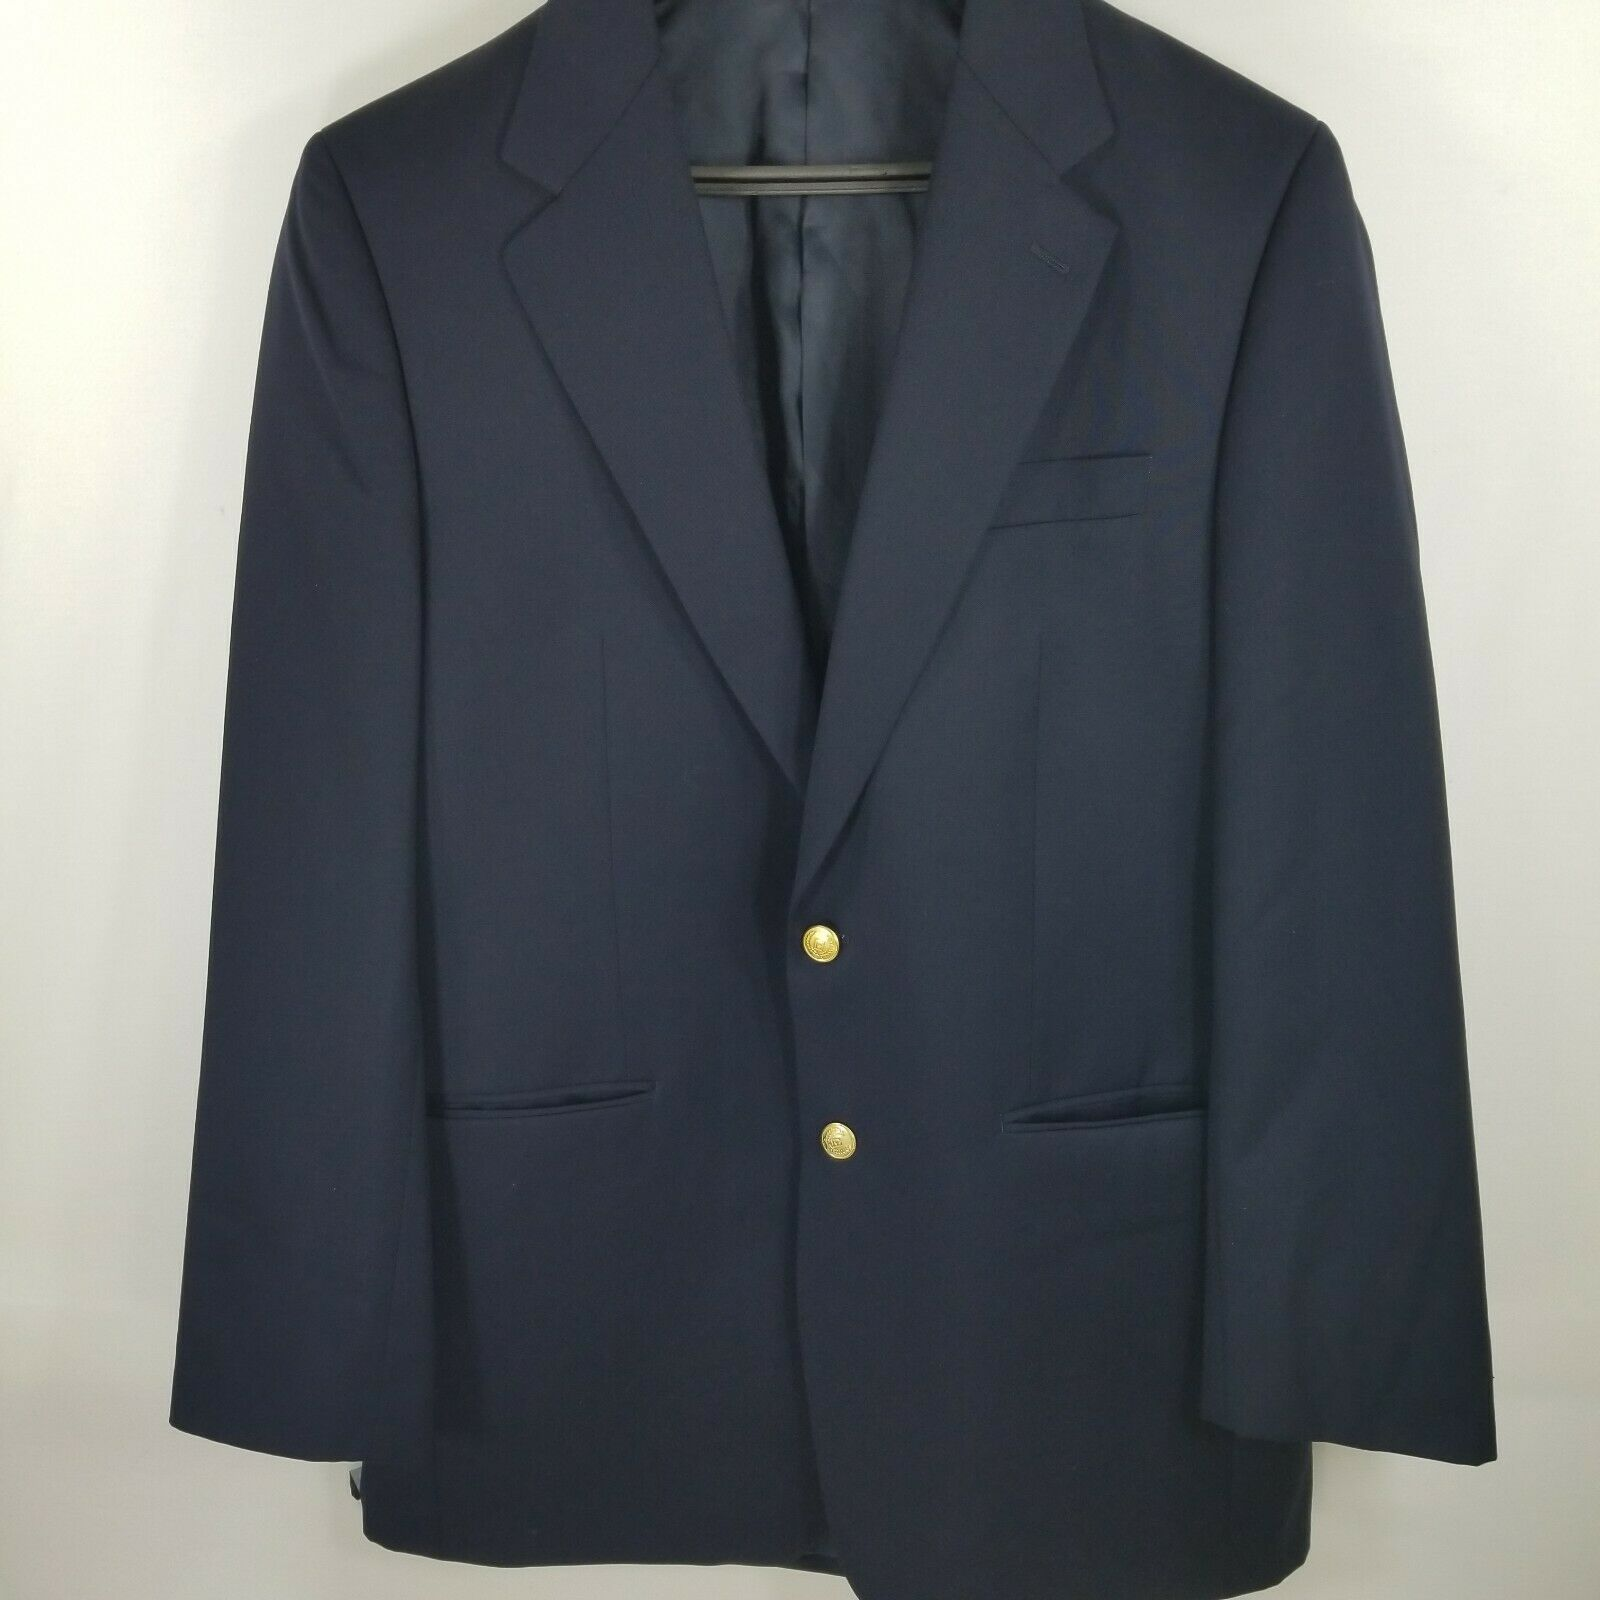 Lauren Ralph Lauren Dark navy bluee blazer 40L Wool Mark 2 golden buttons 1 Vent